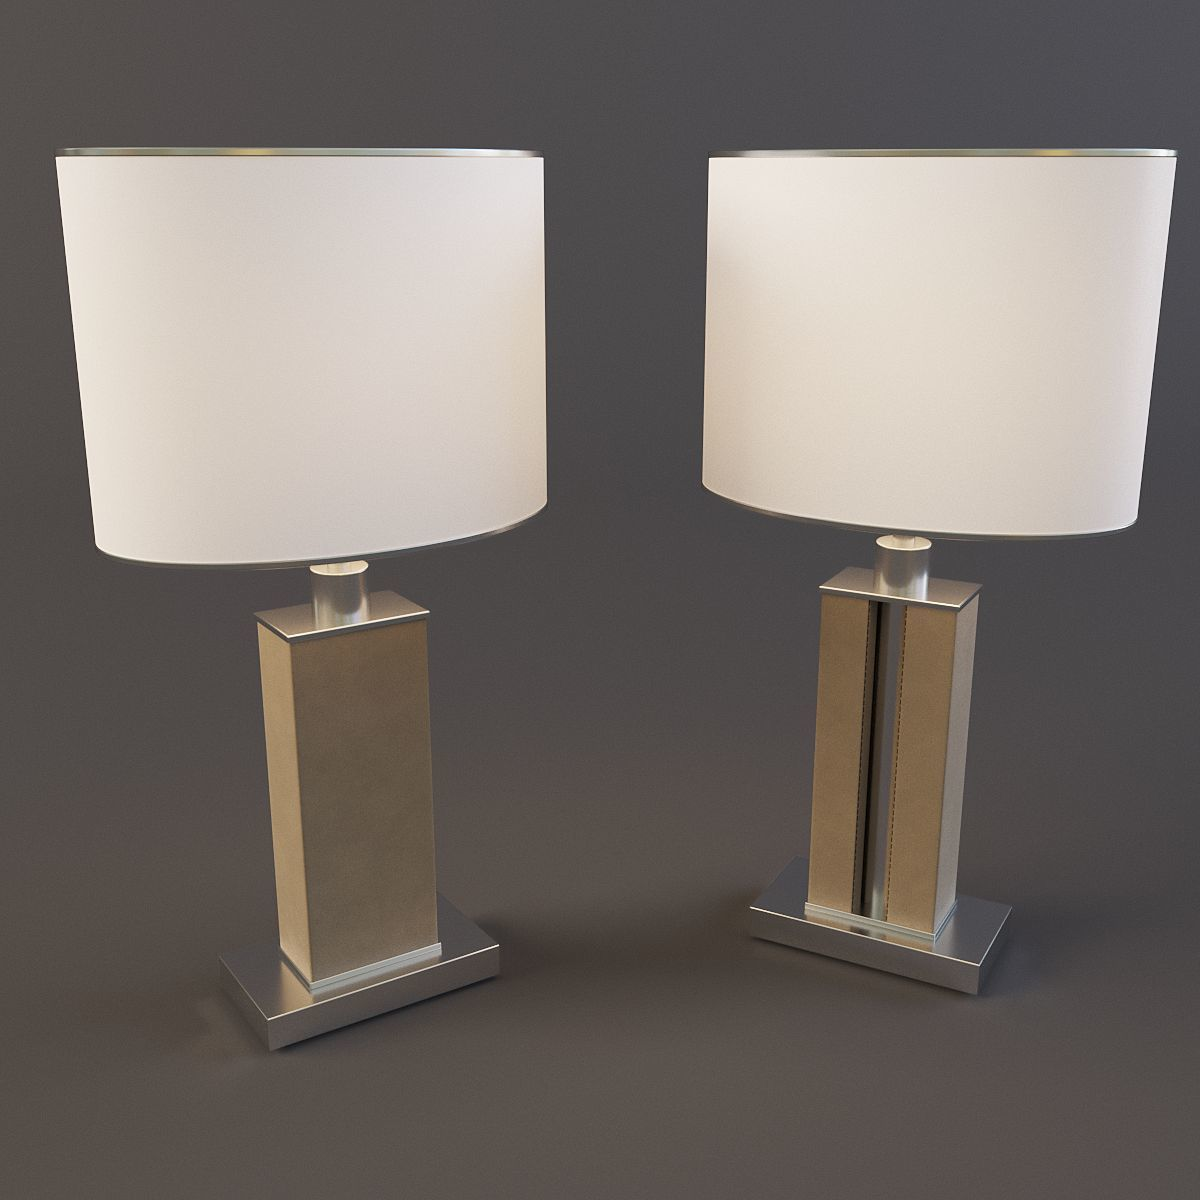 Floor Table Lamps Arizzi 2017 Floor Table Bedside Lamps 2096 Types 3d Model